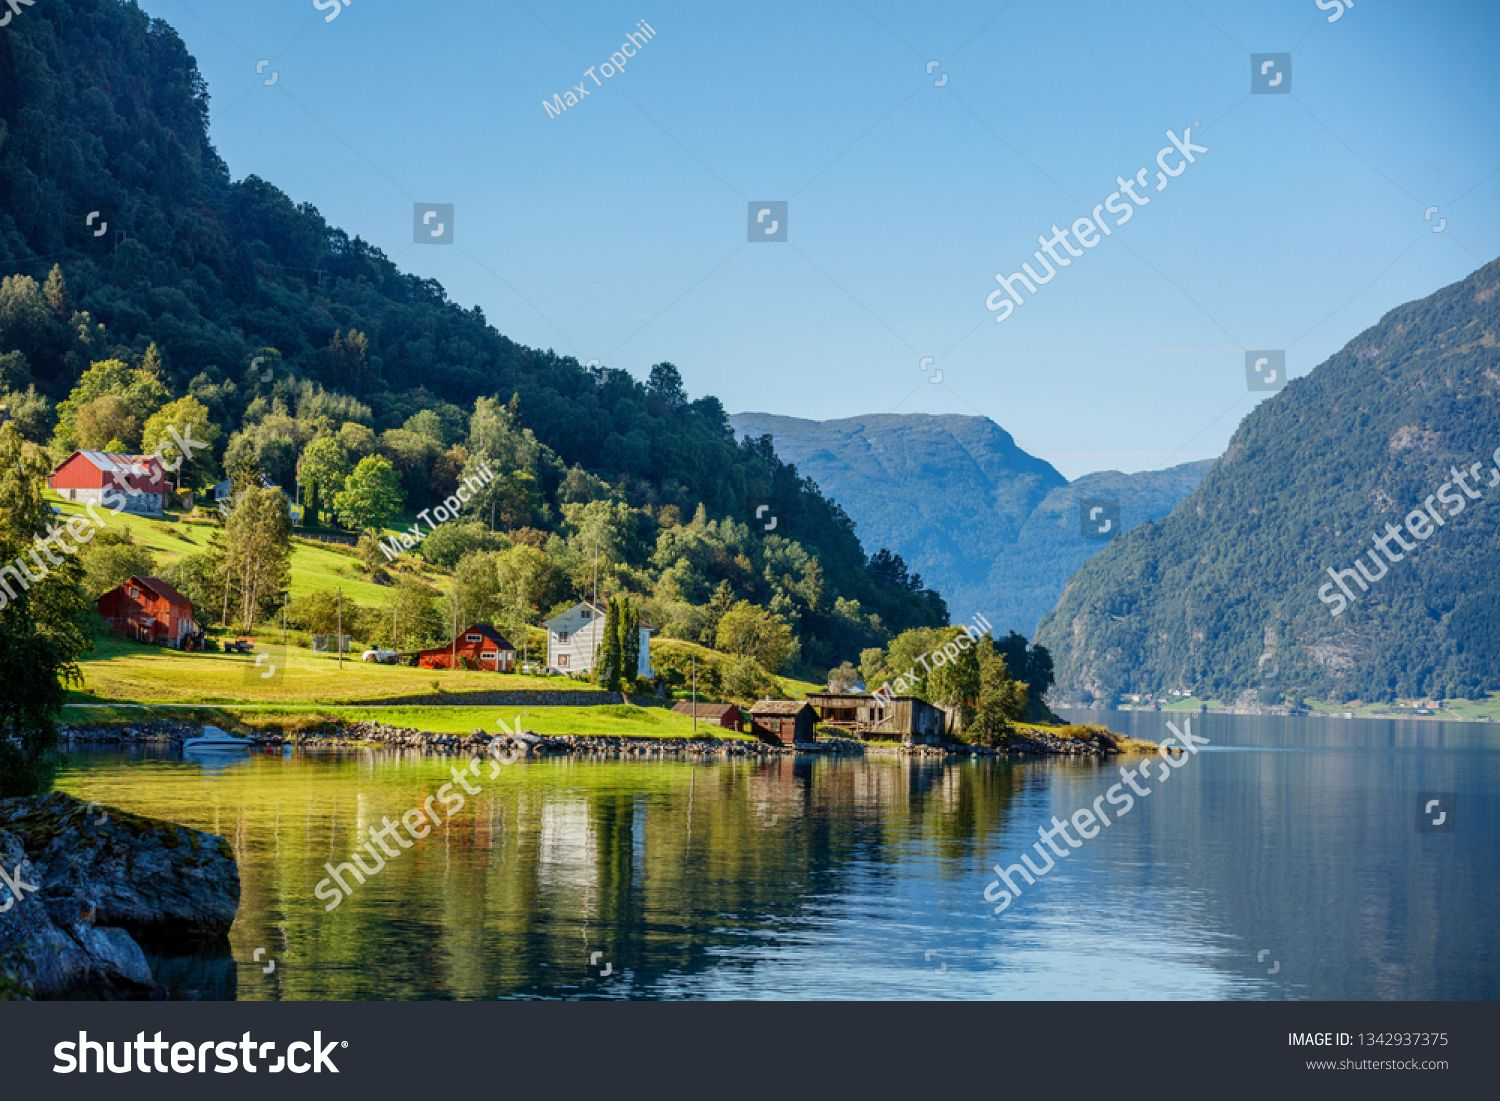 Amazing Nature View With Fjord And Mountain Beautiful Reflection Location Scandinavian Mountains Norway In 2020 Nature View Amazing Nature Beautiful Stock Photos